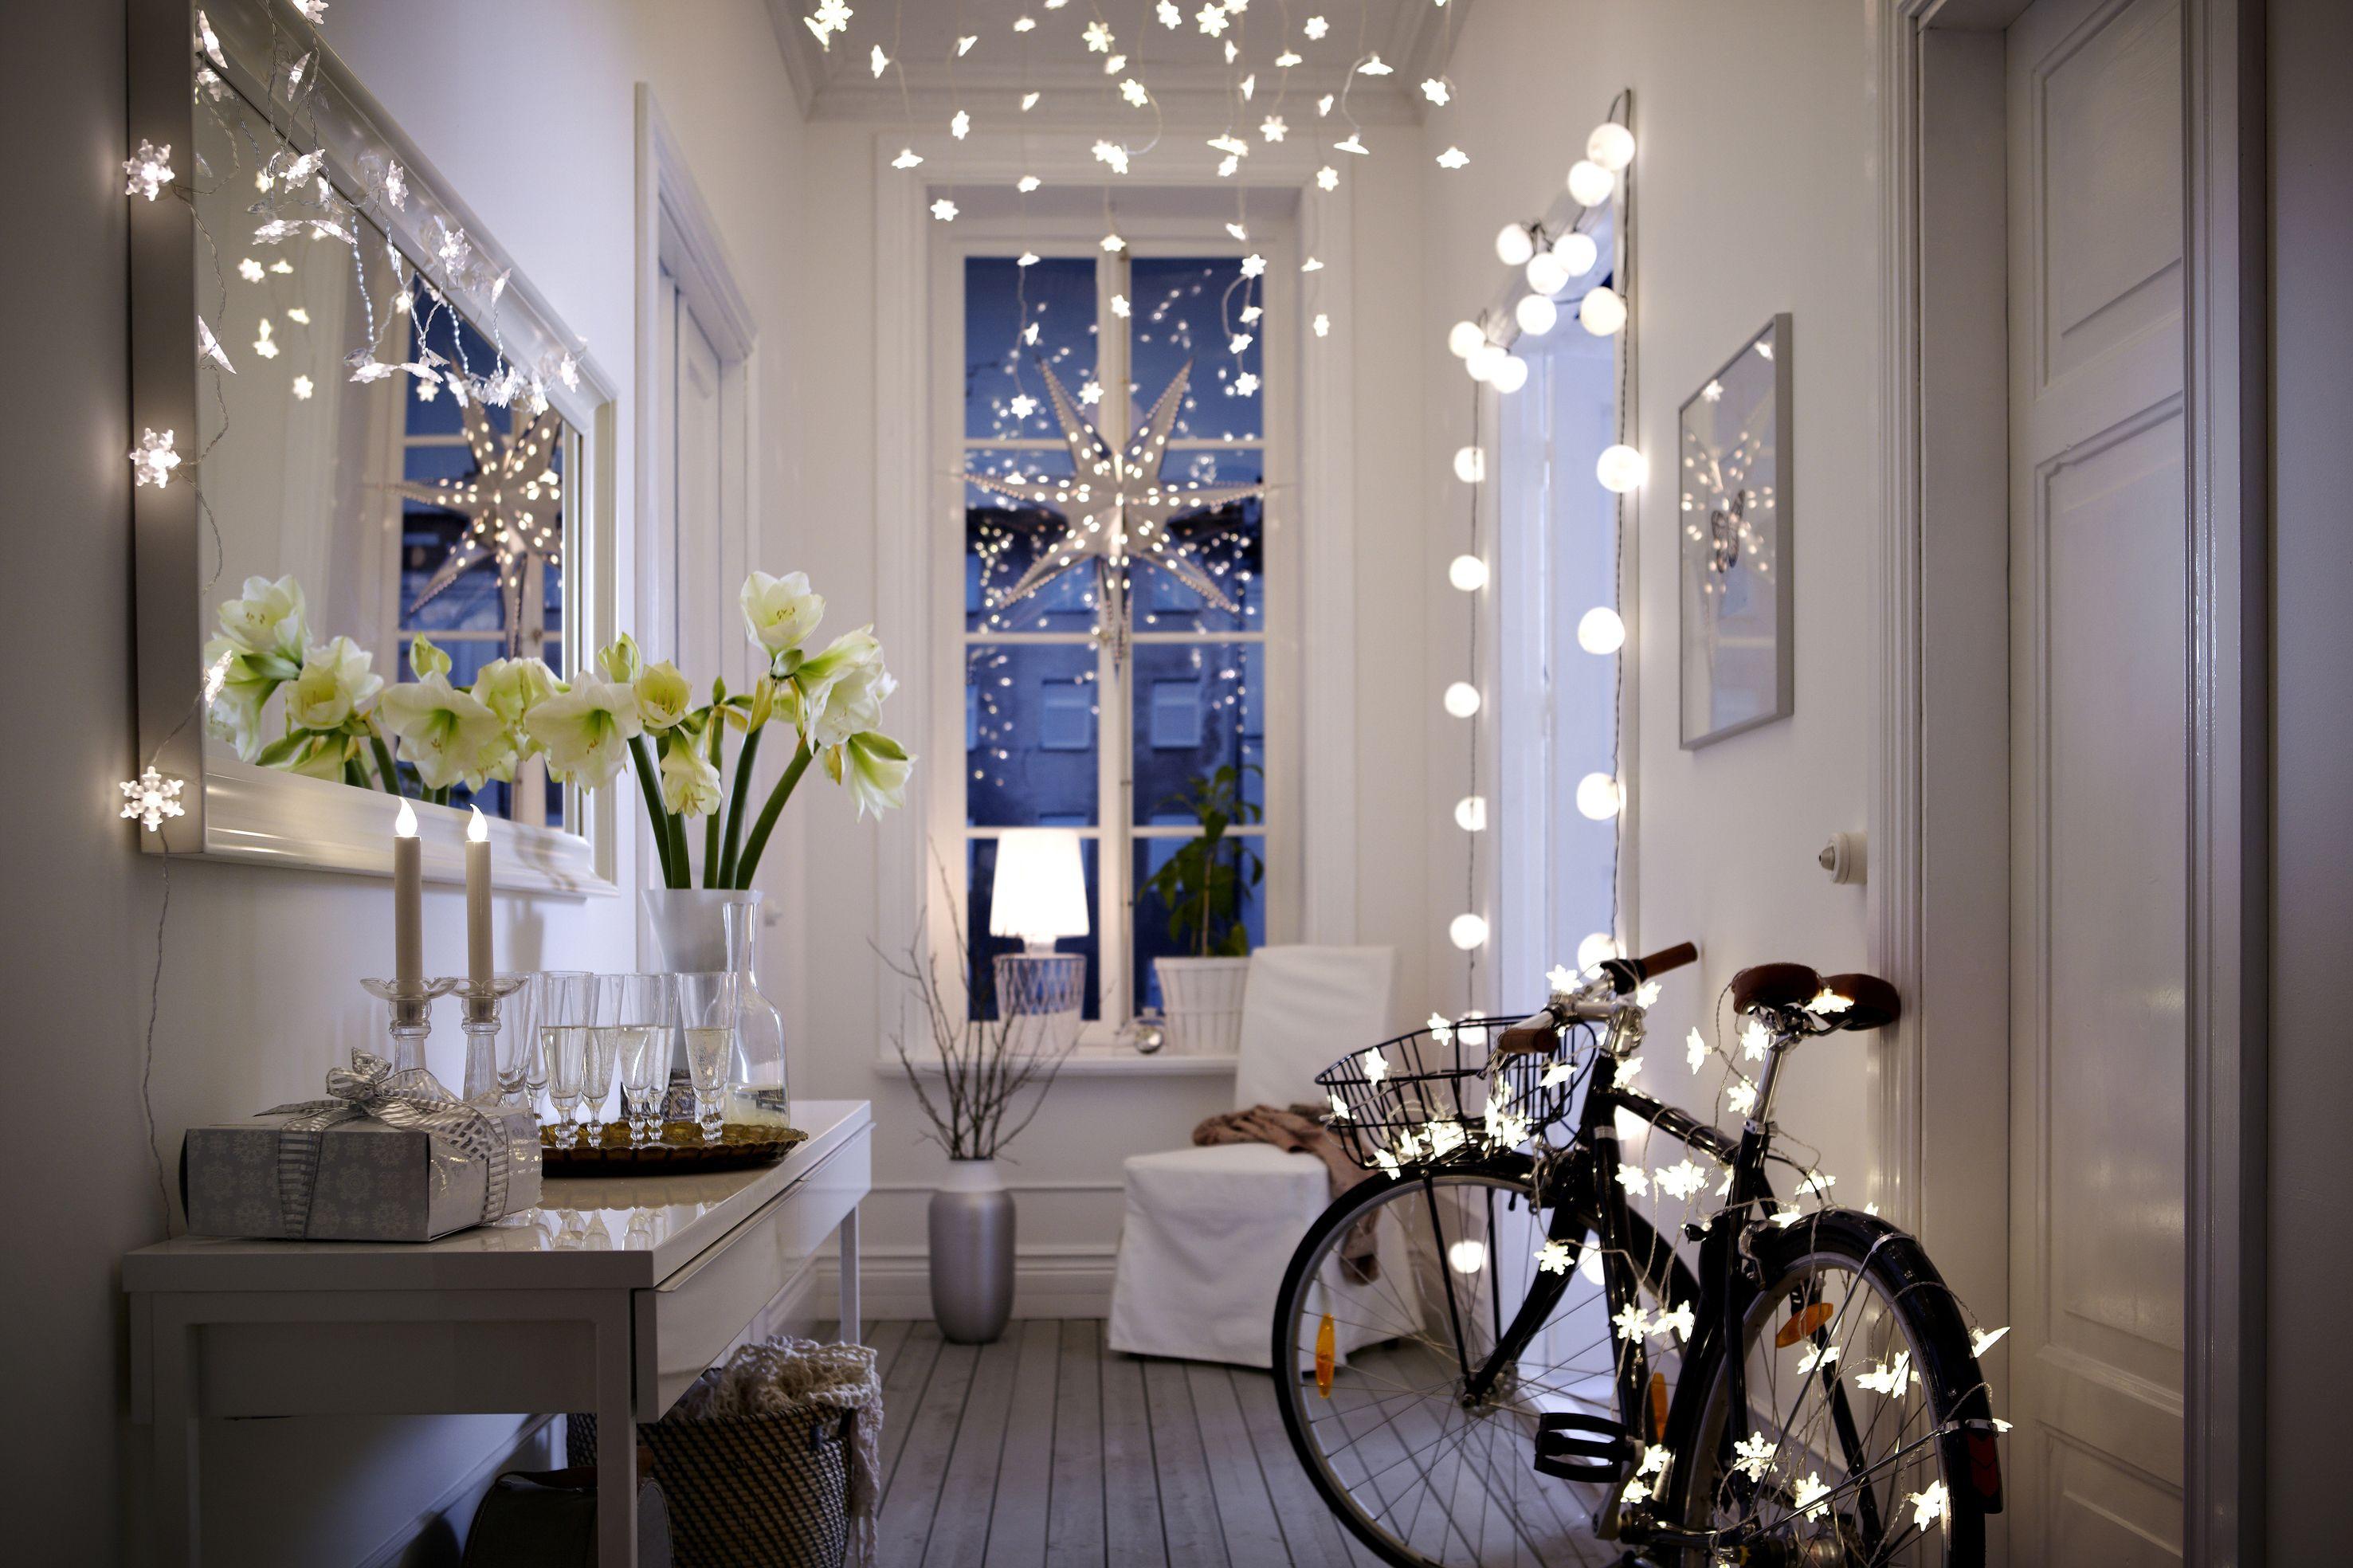 Ikea String Lights Classy Xmas Lighting With Ikea For The Home  Pinterest  Interiors Inspiration